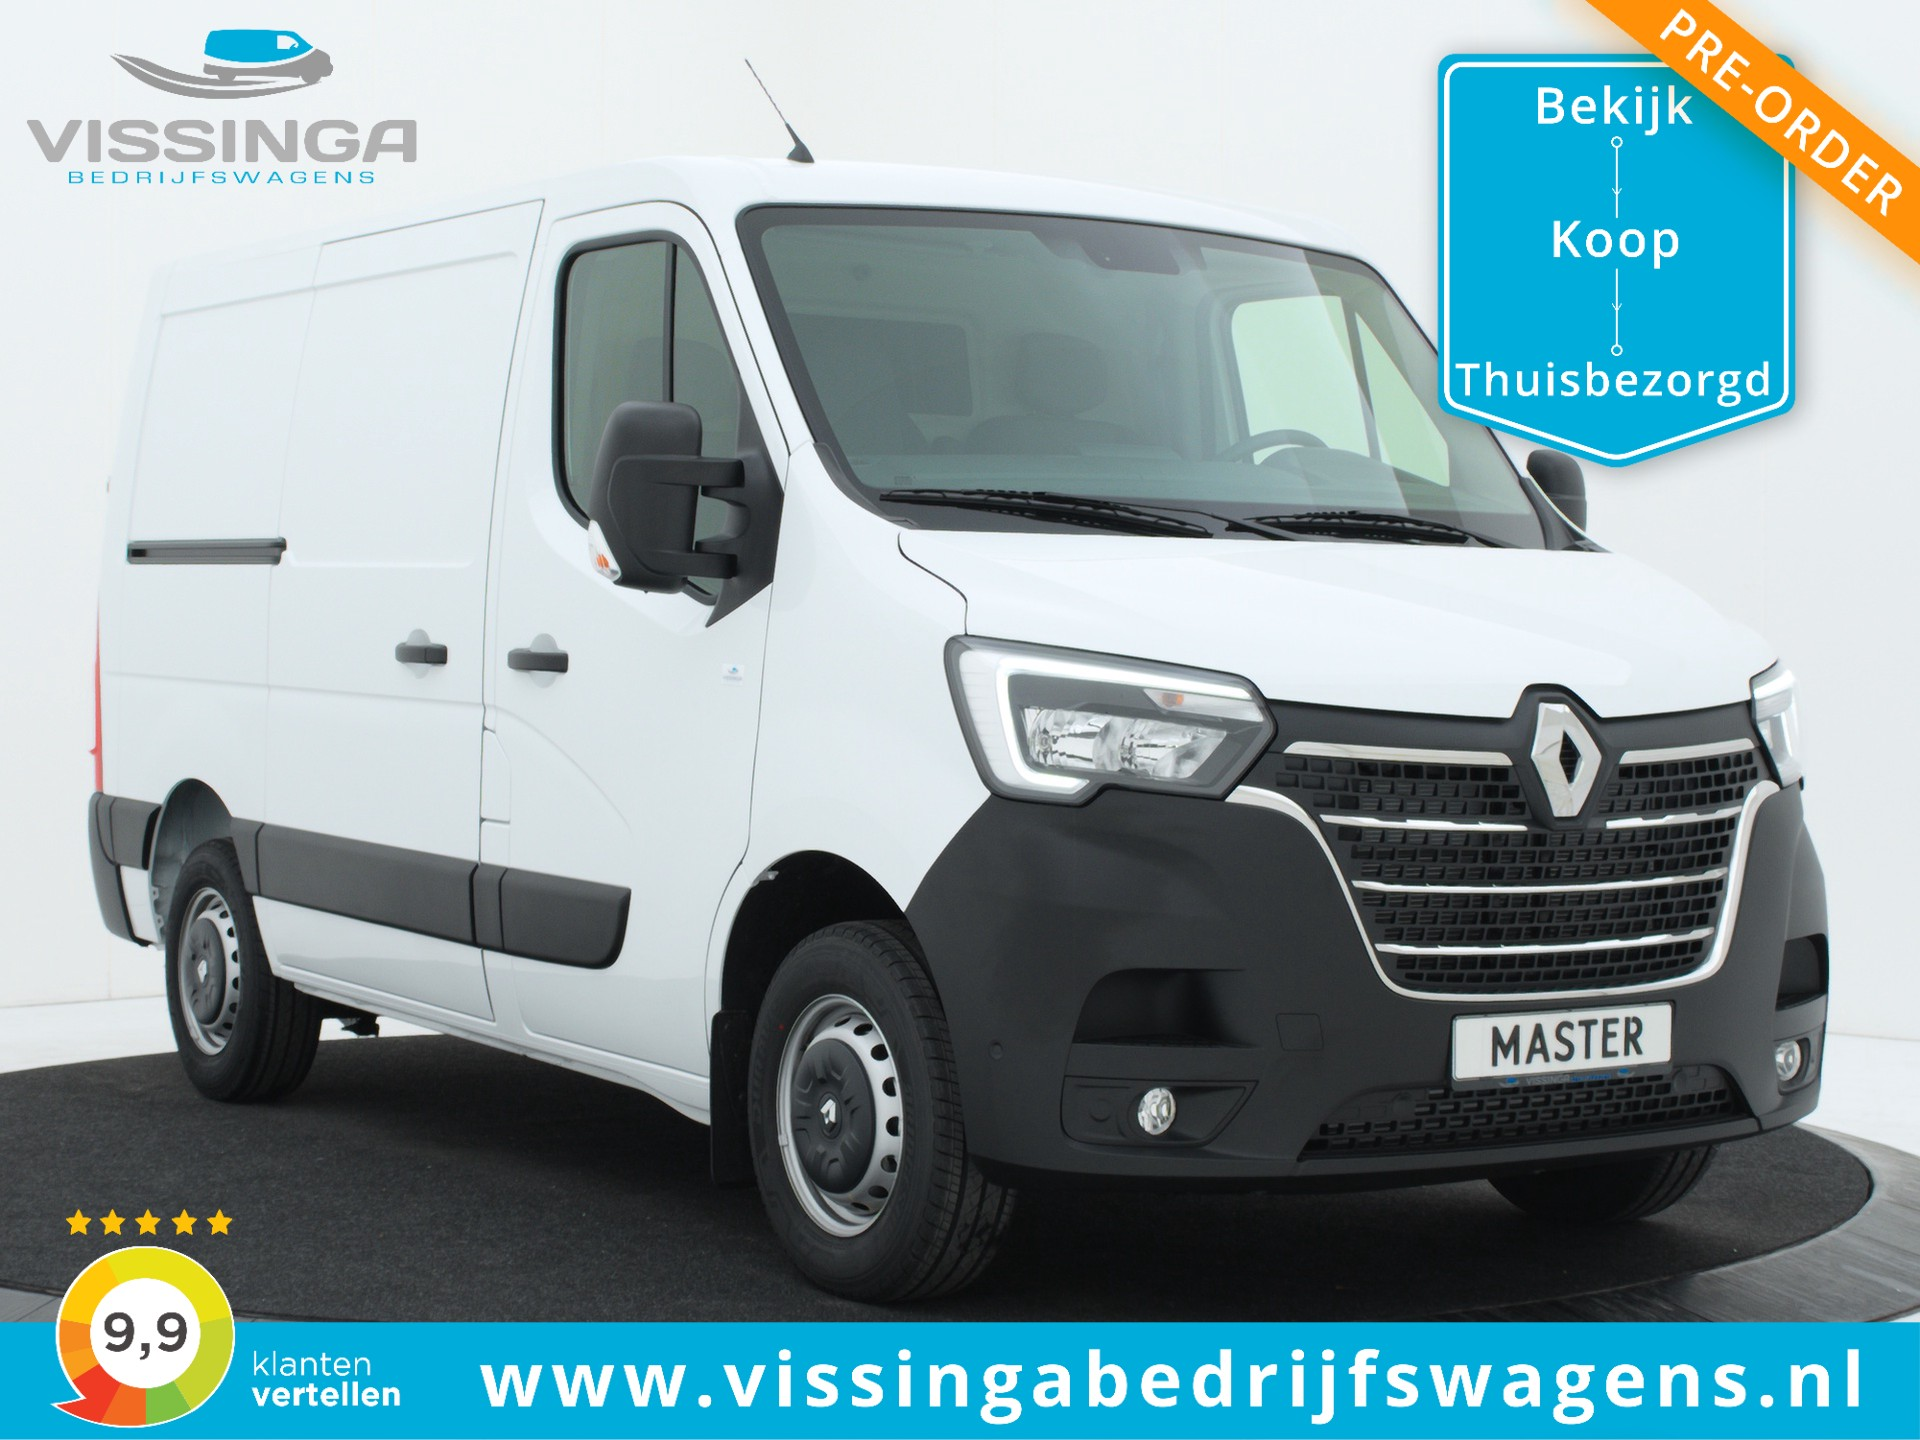 Renault Master T28 2.3 dCi L1H1 135 pk Twin-Turbo